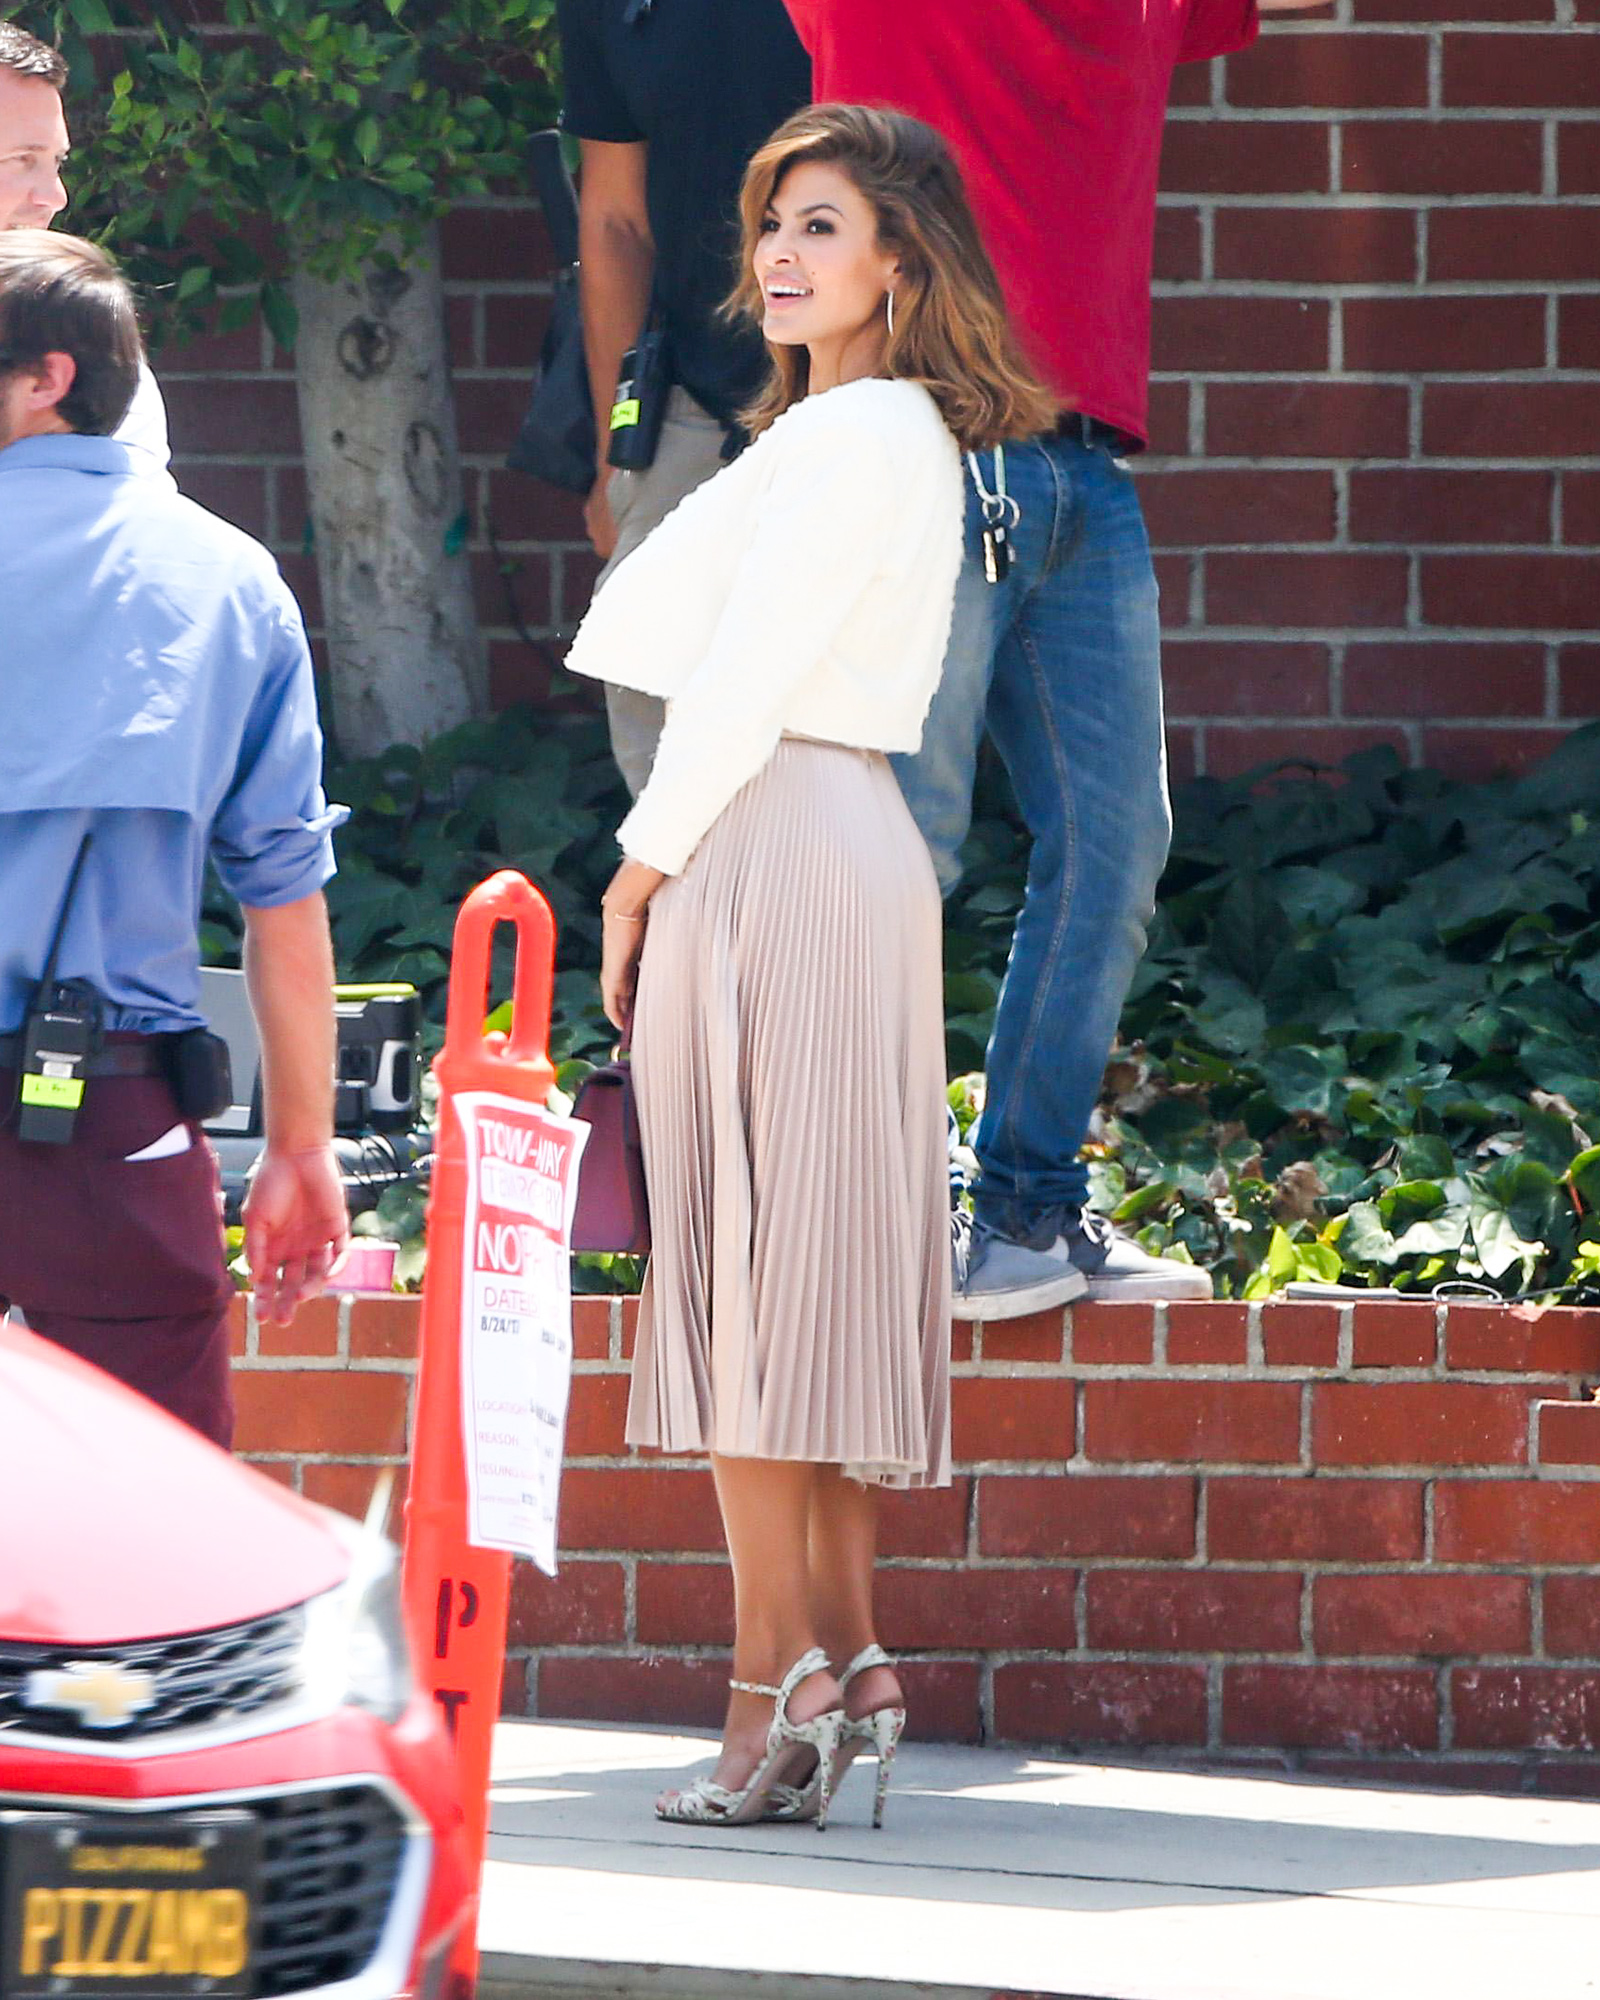 EXCLUSIVE: Eva Mendes spotted doing a photoshoot in Los Angeles